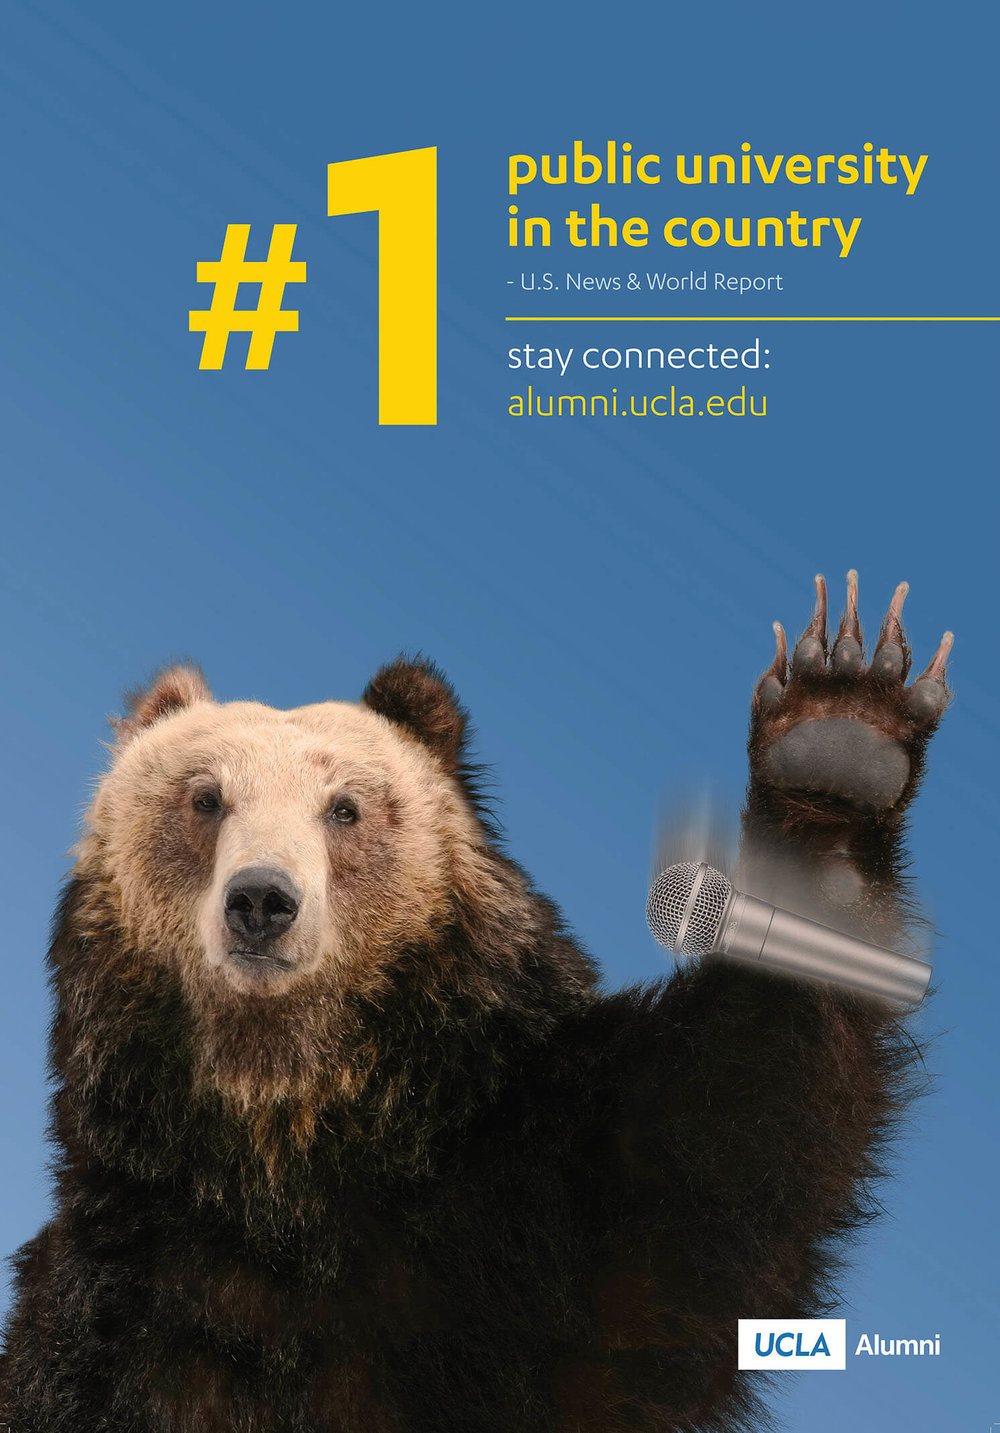 This magazine ad and poster capitalizing on the fact that rankings are UCLA Alumni's best performing content (and they had something to brag about.